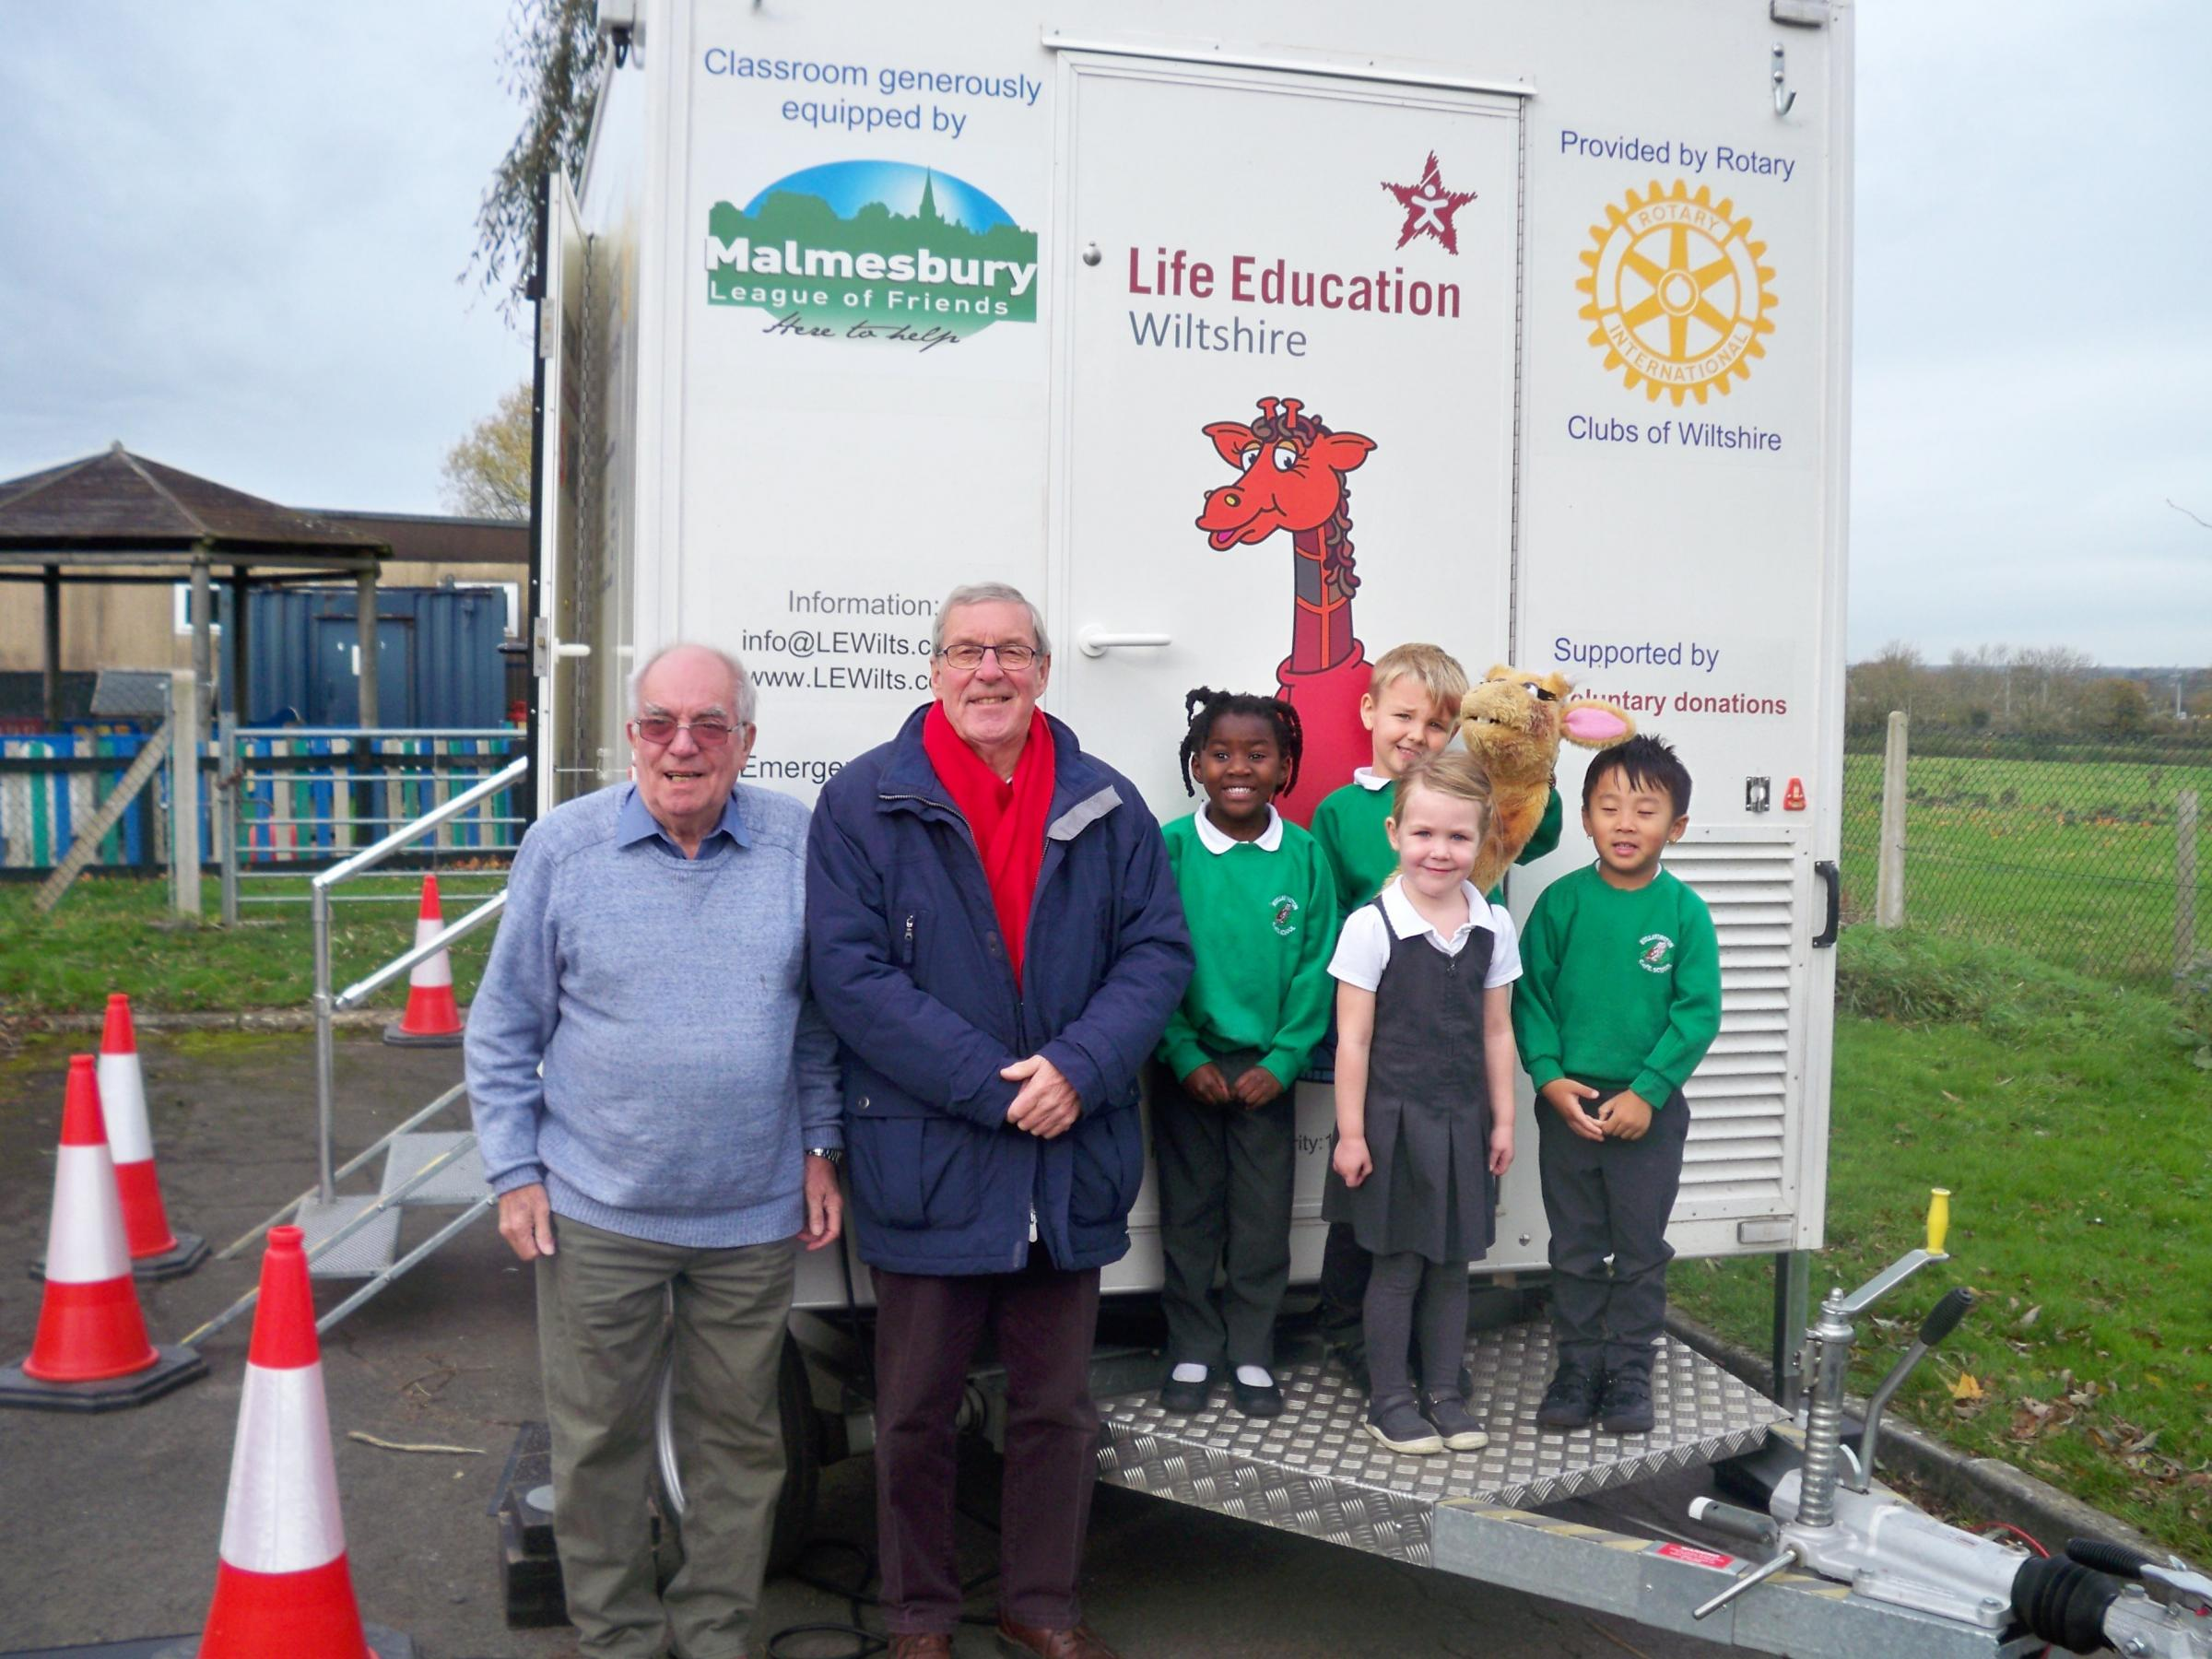 Malmesbury League of Friends and Rotary clubs fund new mobile classroom